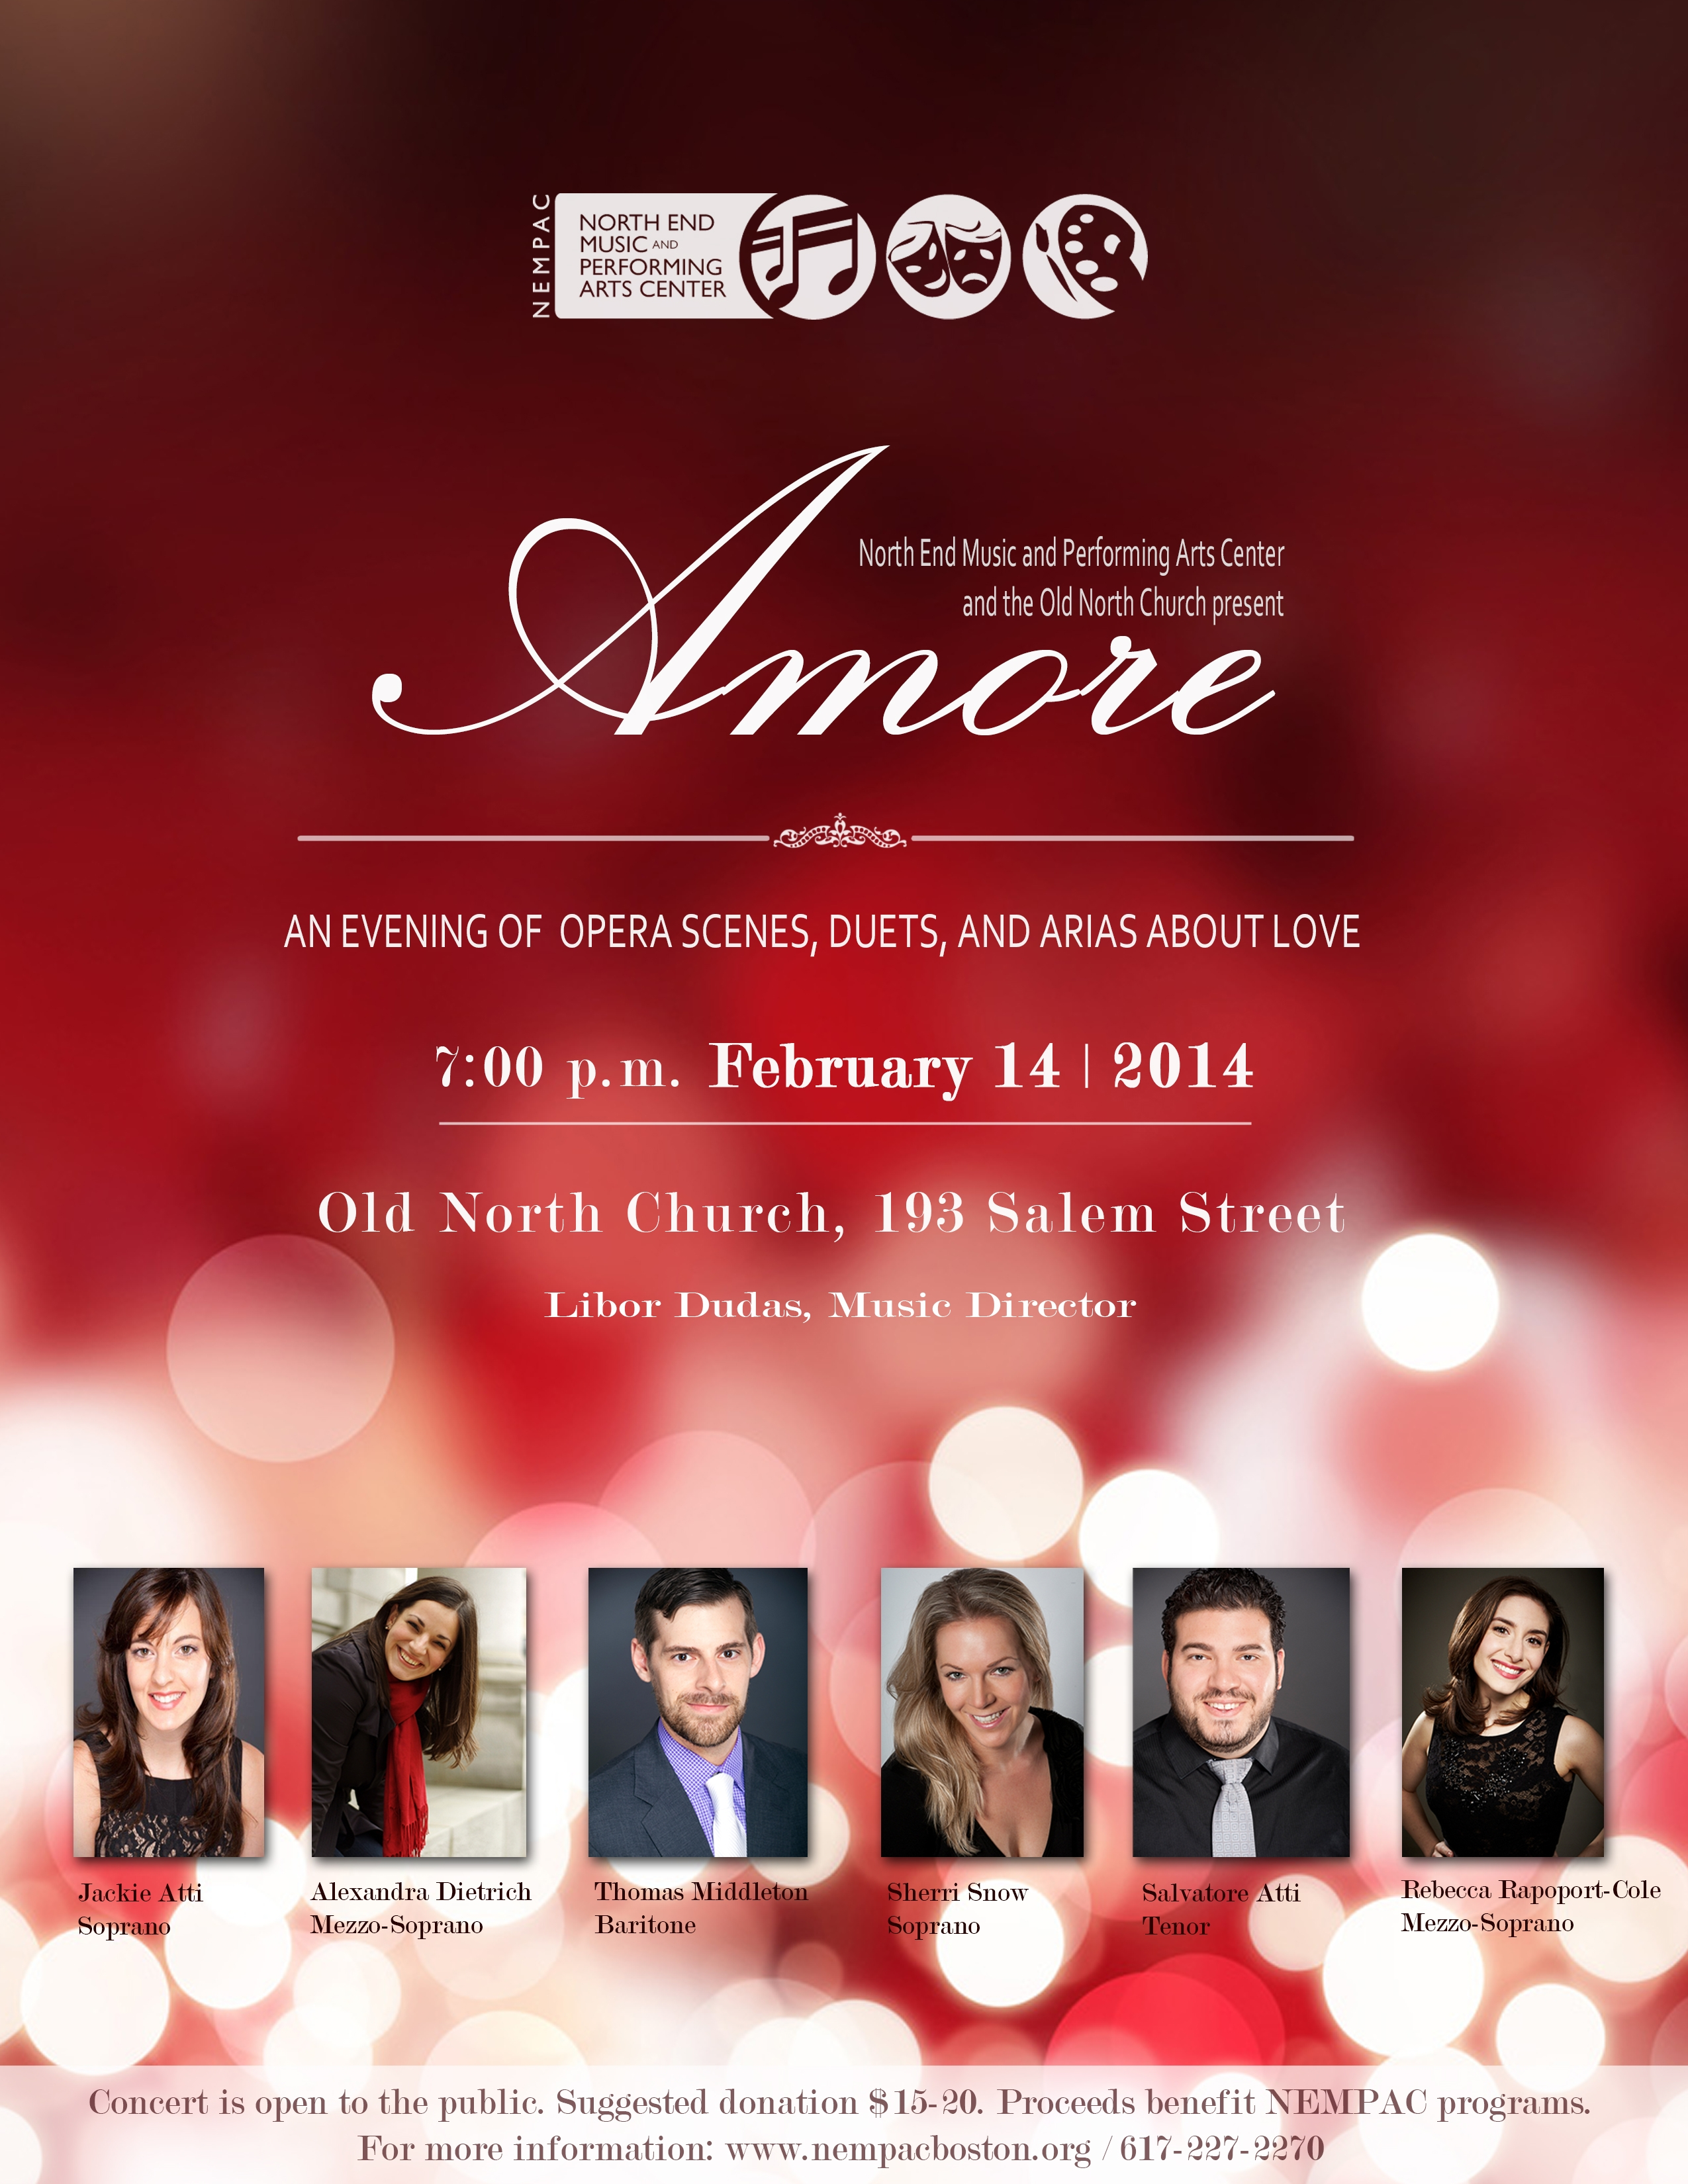 Old North Church Plays Host To NEMPACs Valentines Day Opera